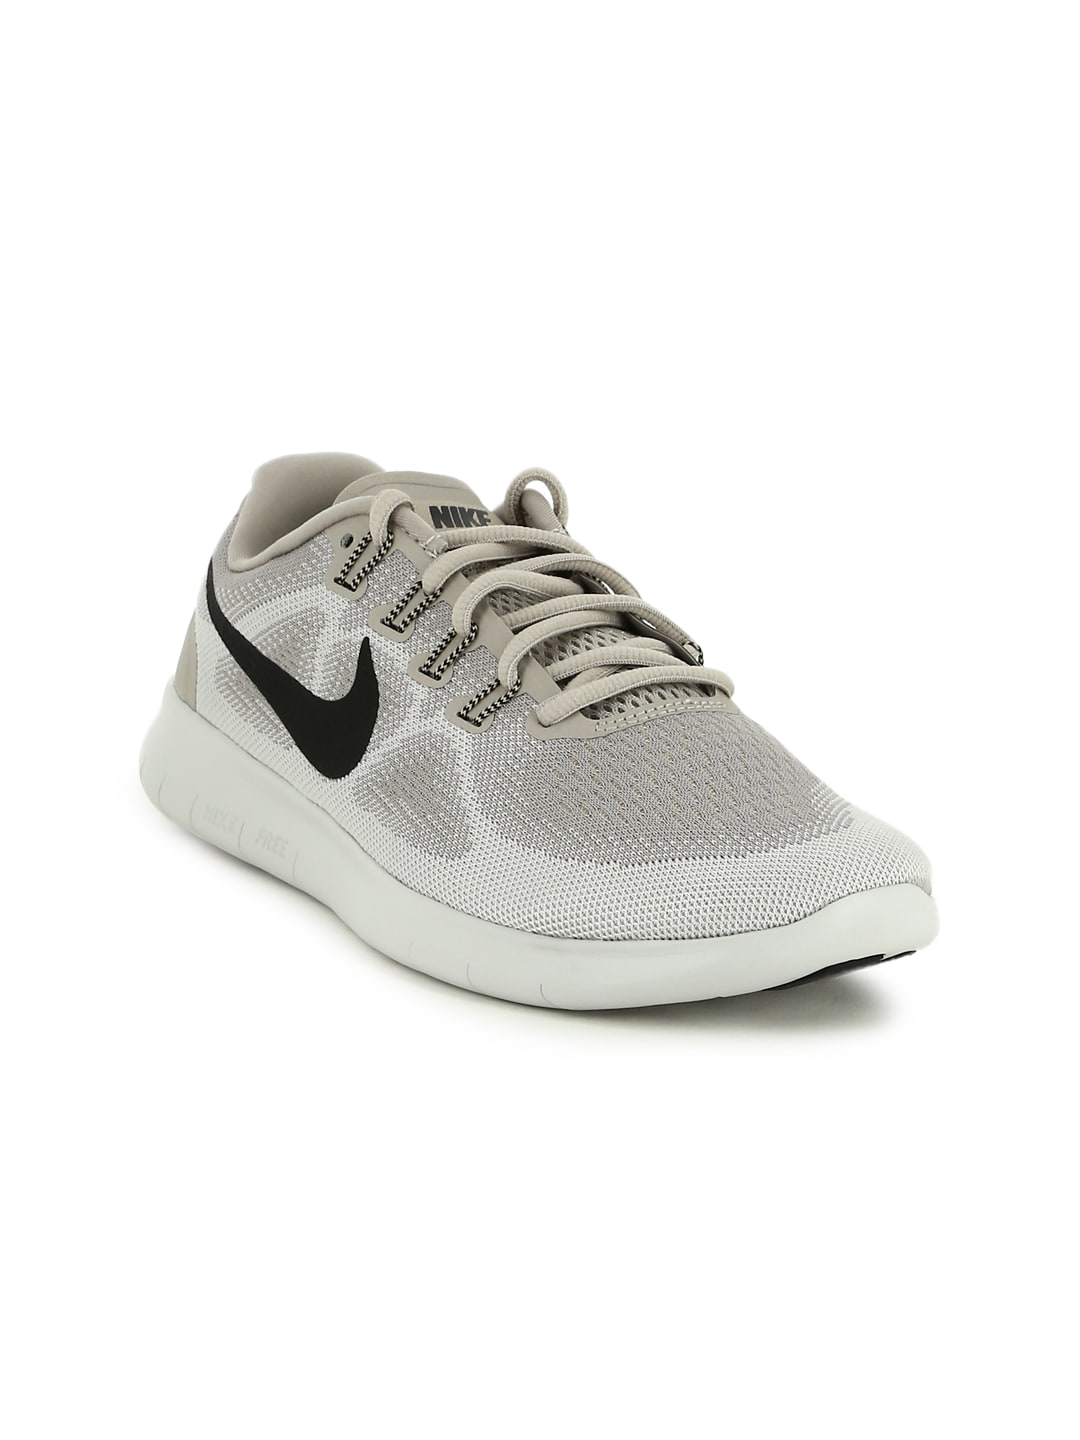 huge selection of c8468 1fbb4 Nike Shoes - Buy Nike Shoes for Men   Women Online   Myntra